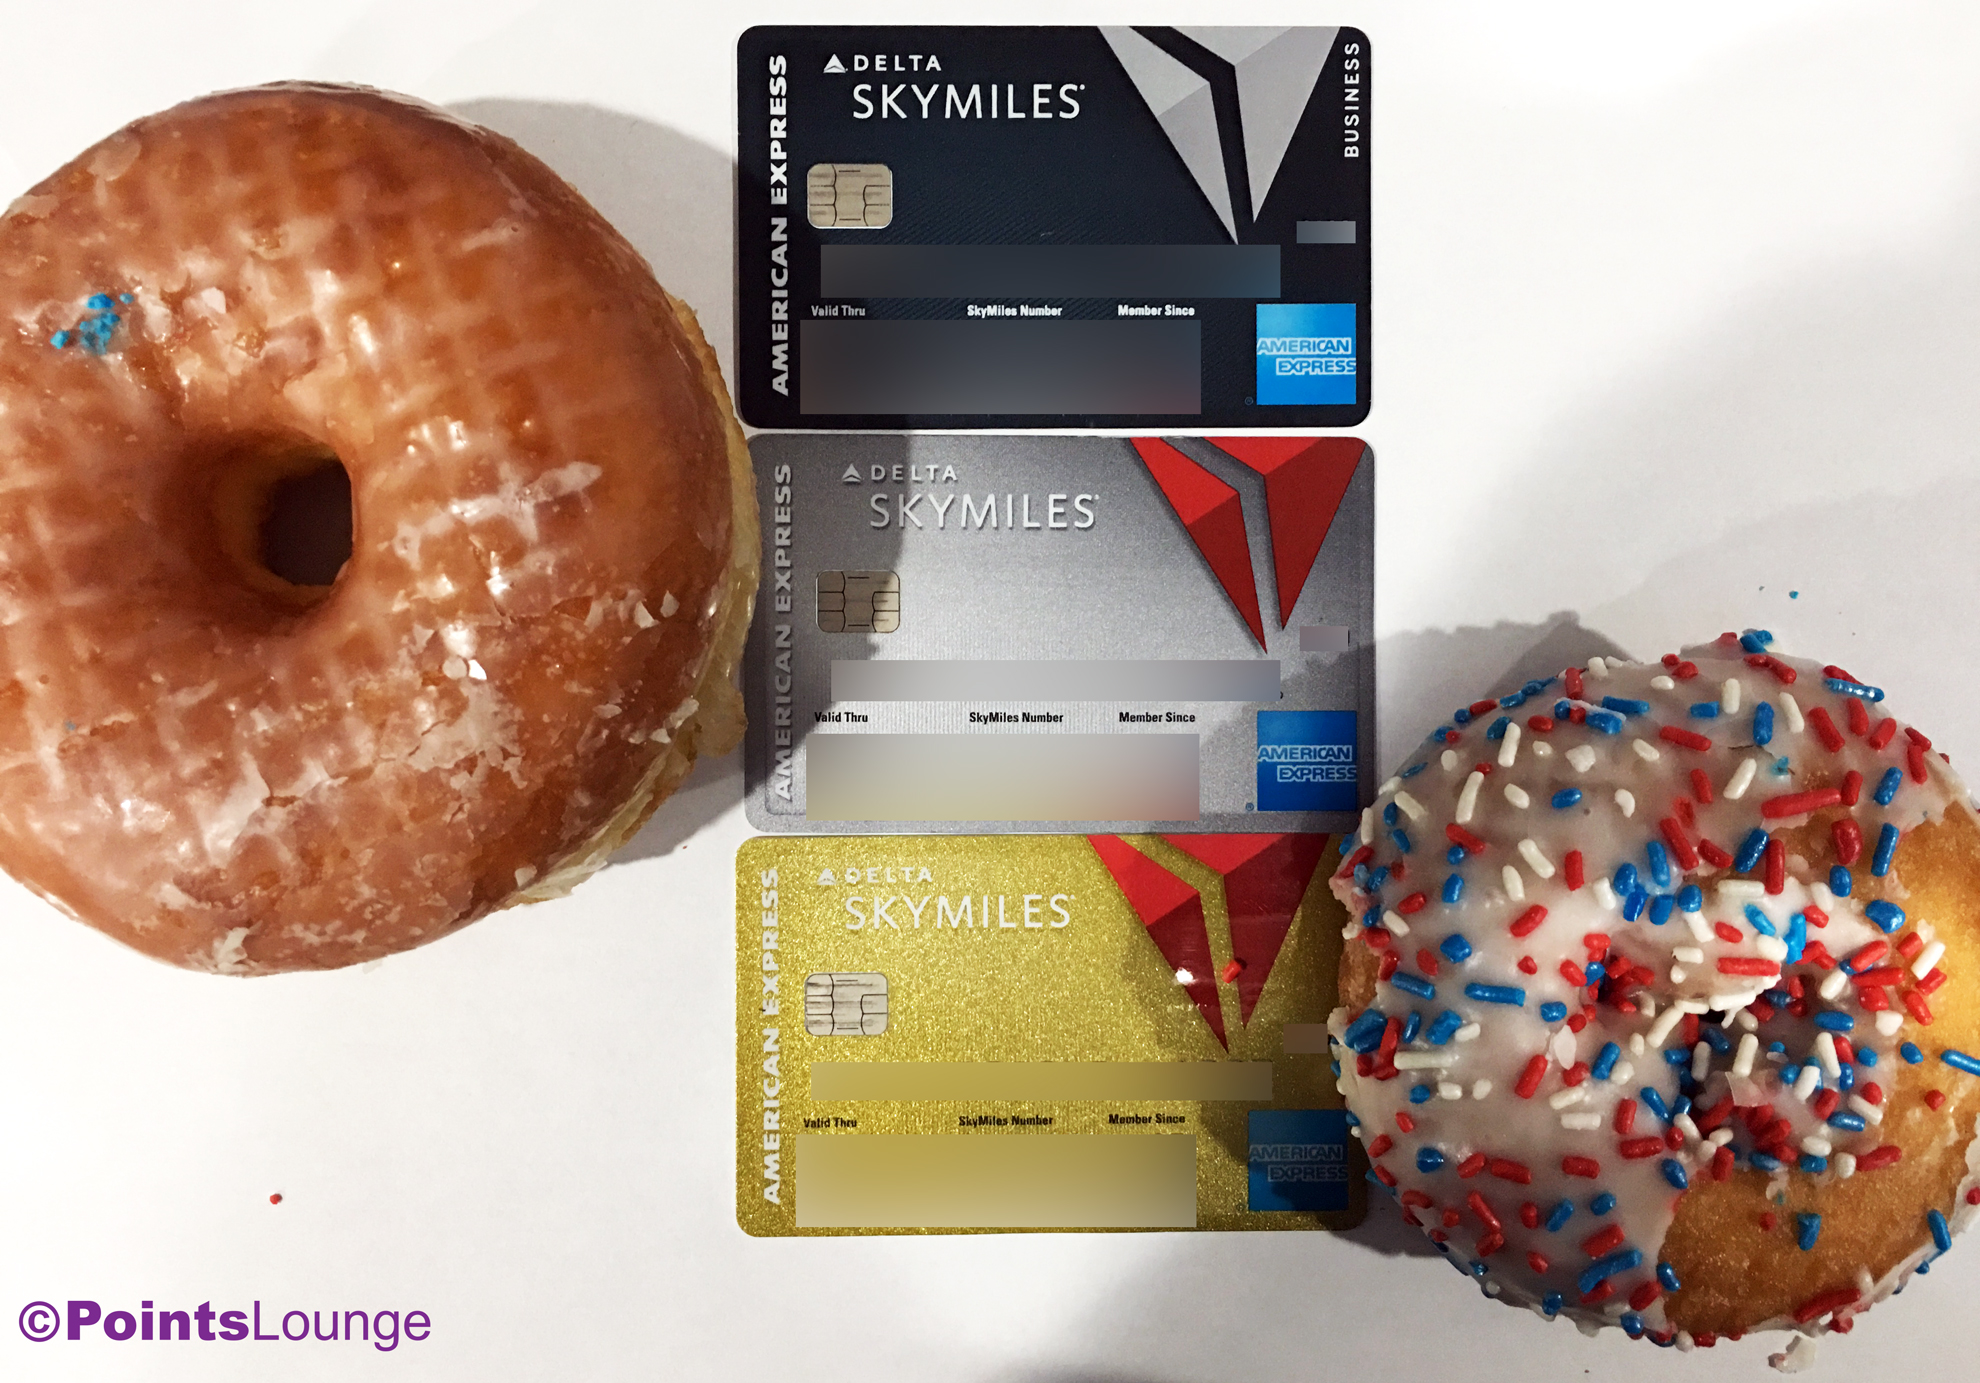 Doughnuts surround Delta American Express credit cards.